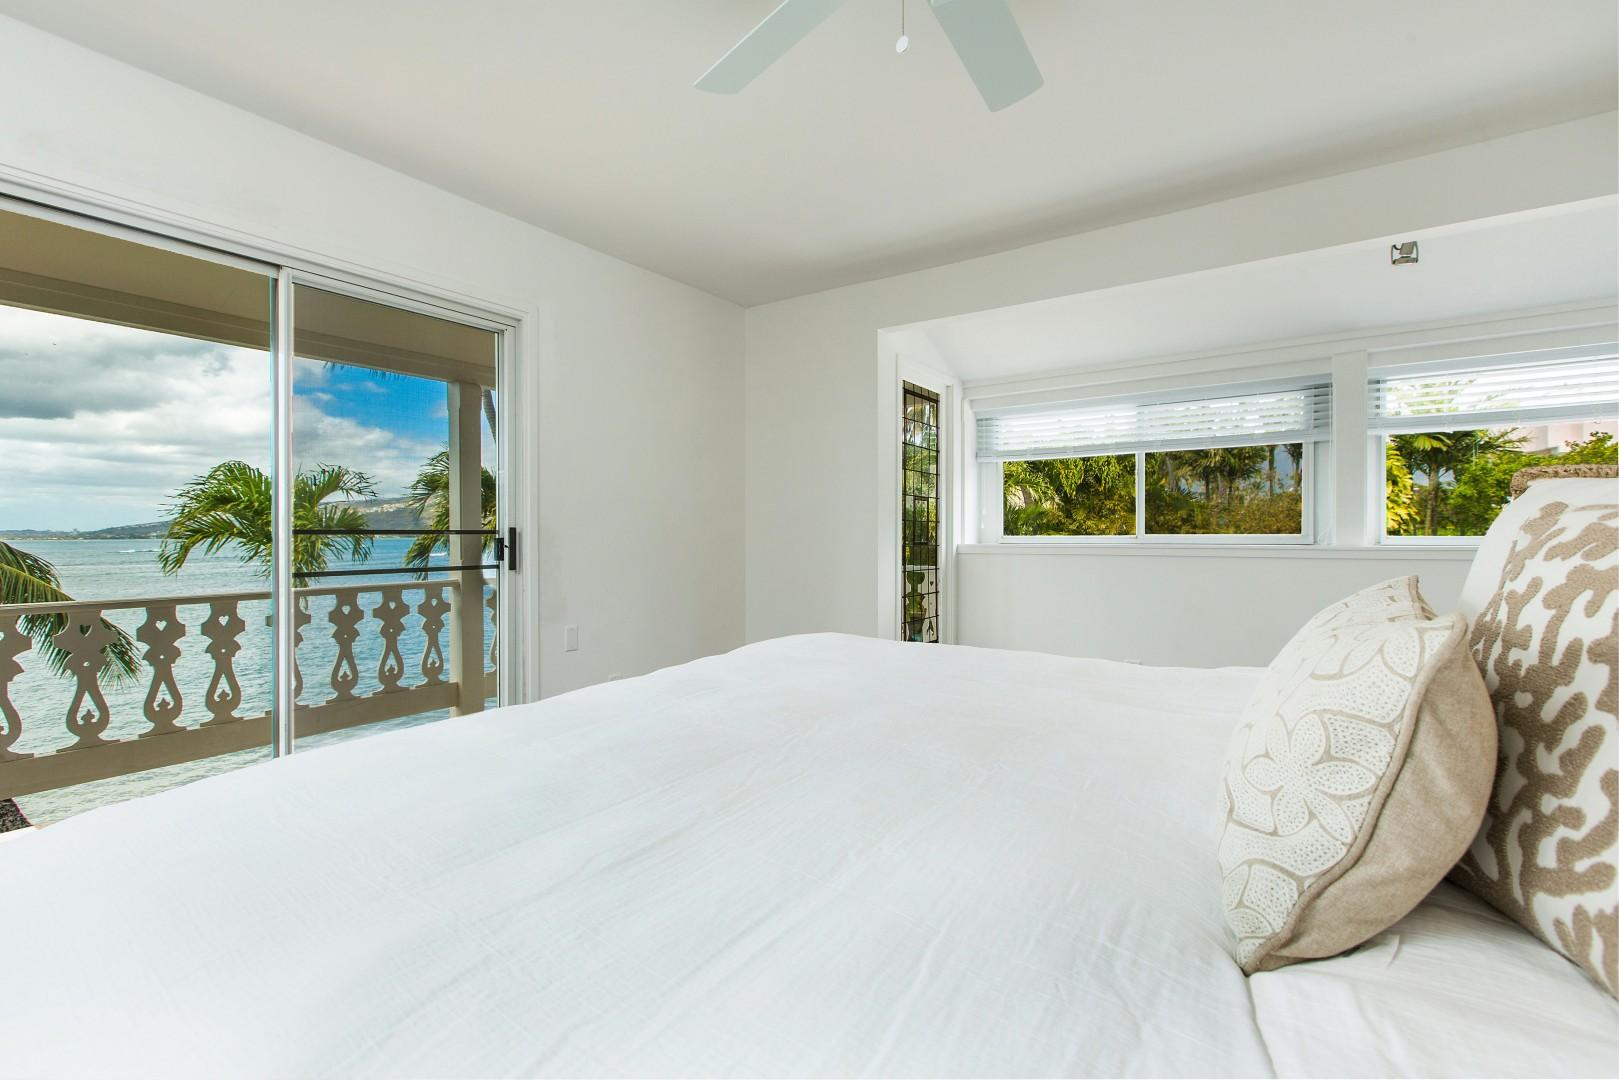 Master suite view from the king bed.